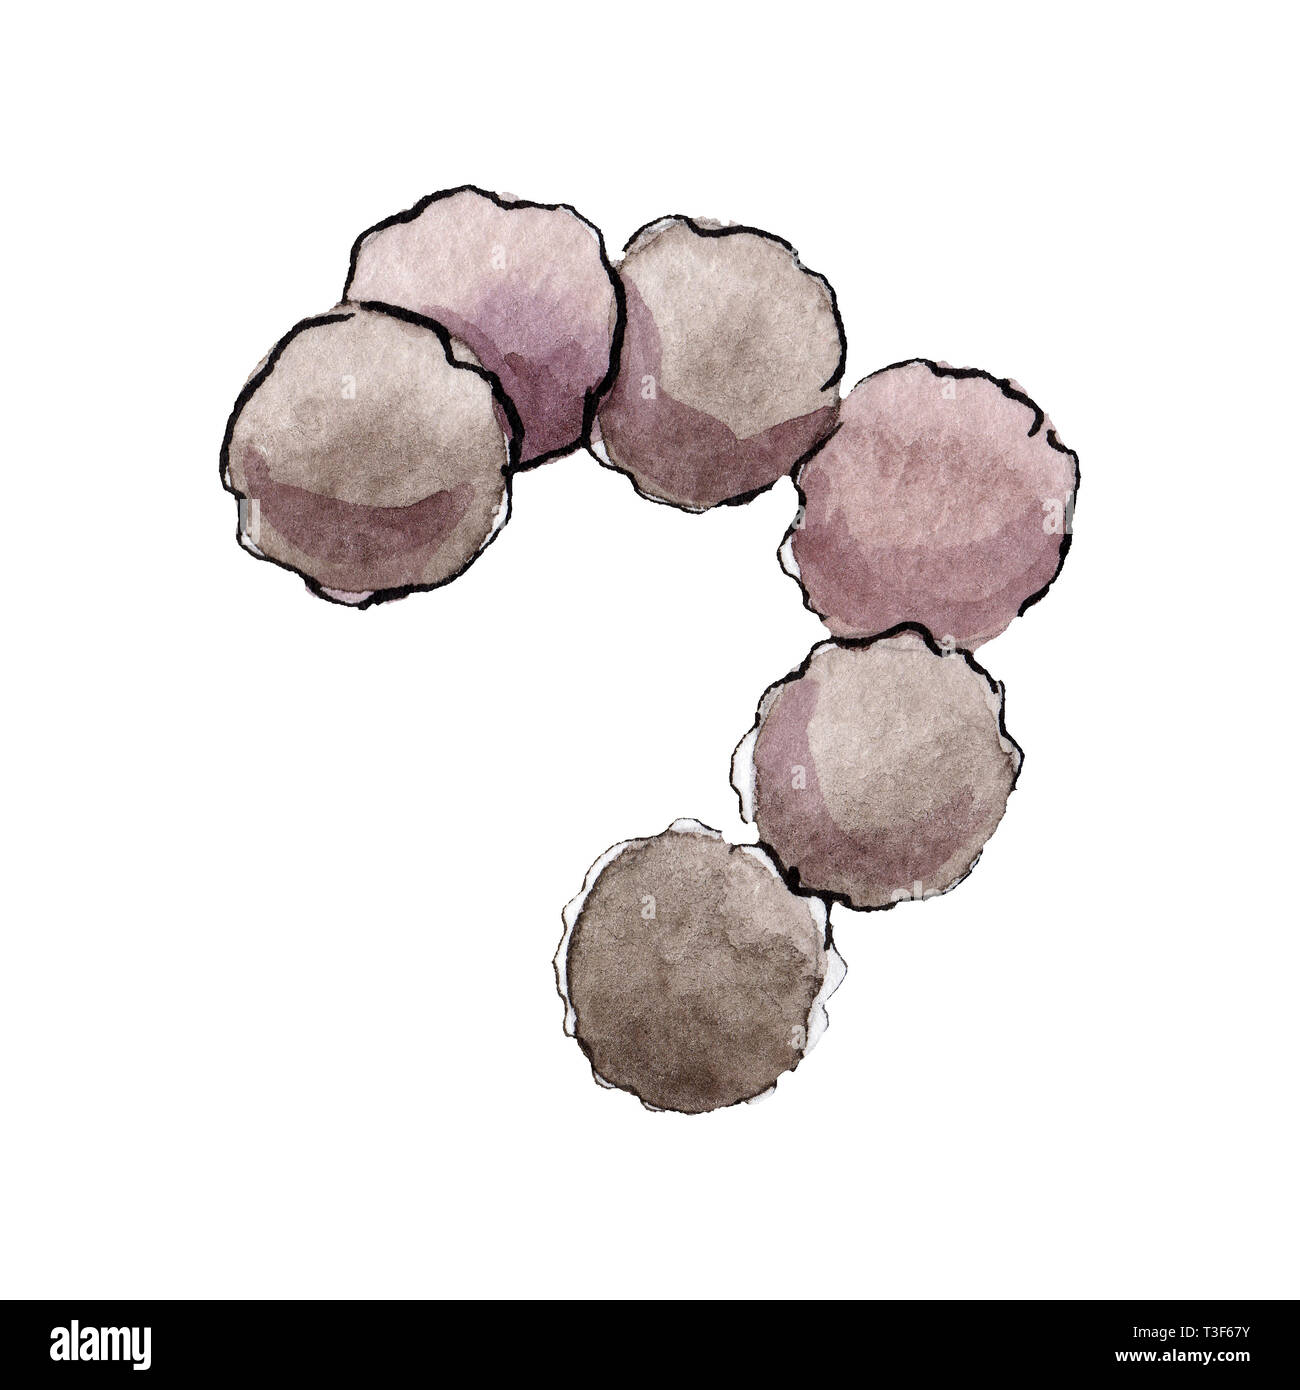 Microbe or germ hand drawn illustration. Watercolor background set. Isolated microorganism illustration element. - Stock Image